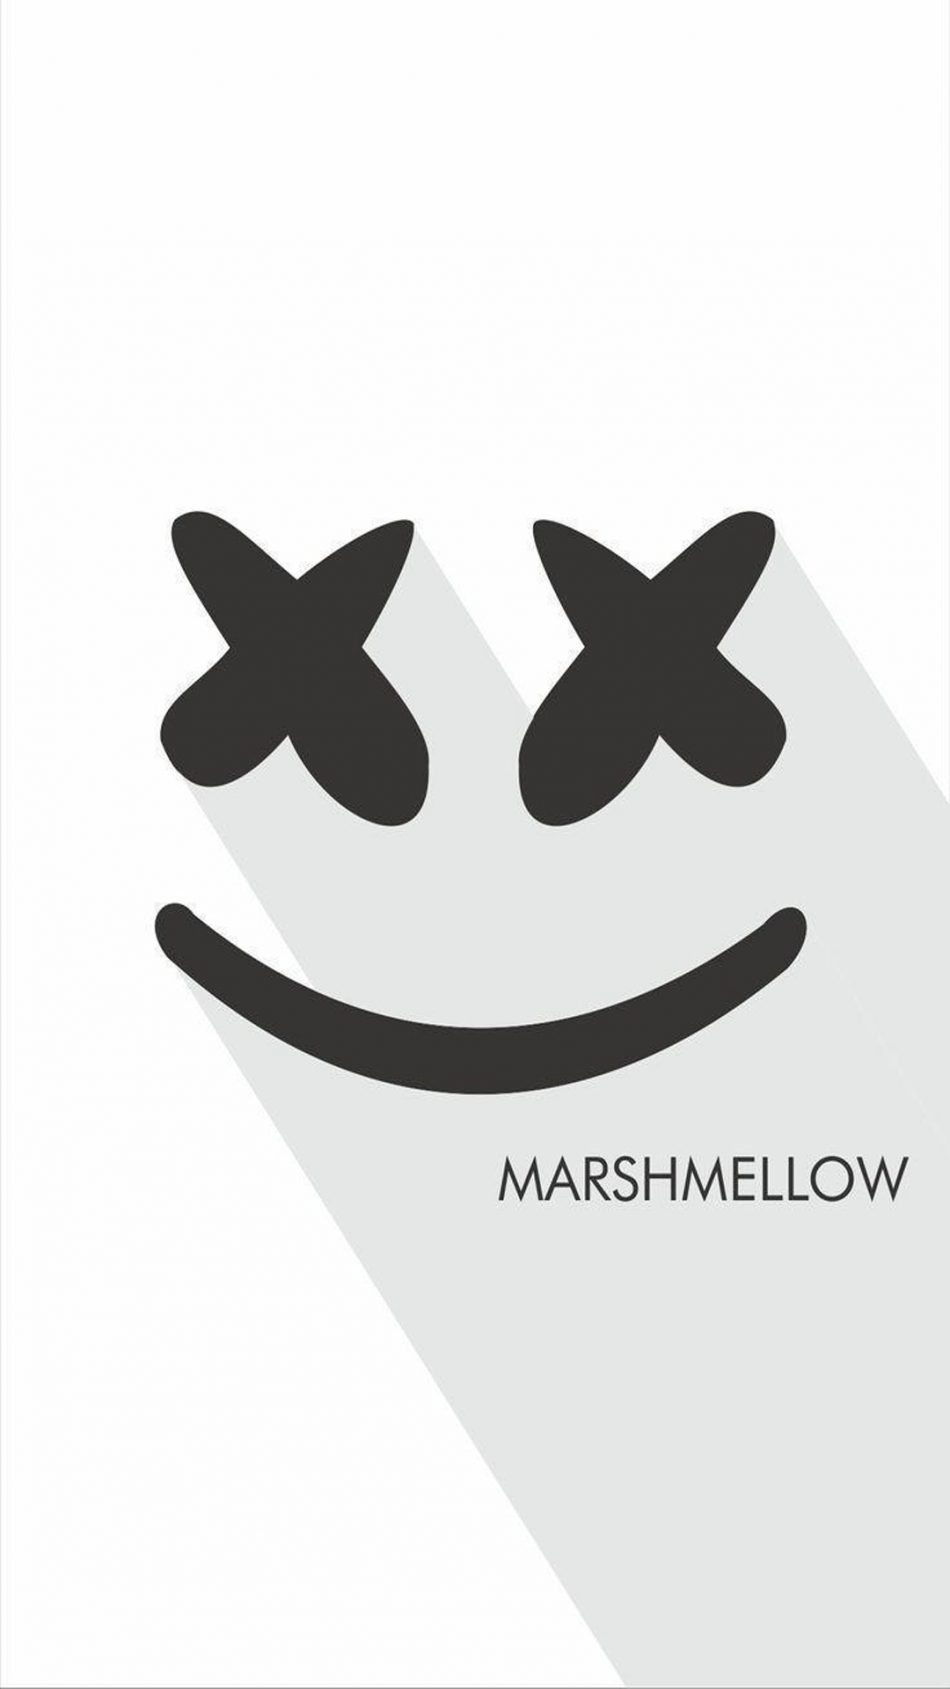 download dj marshmello logo